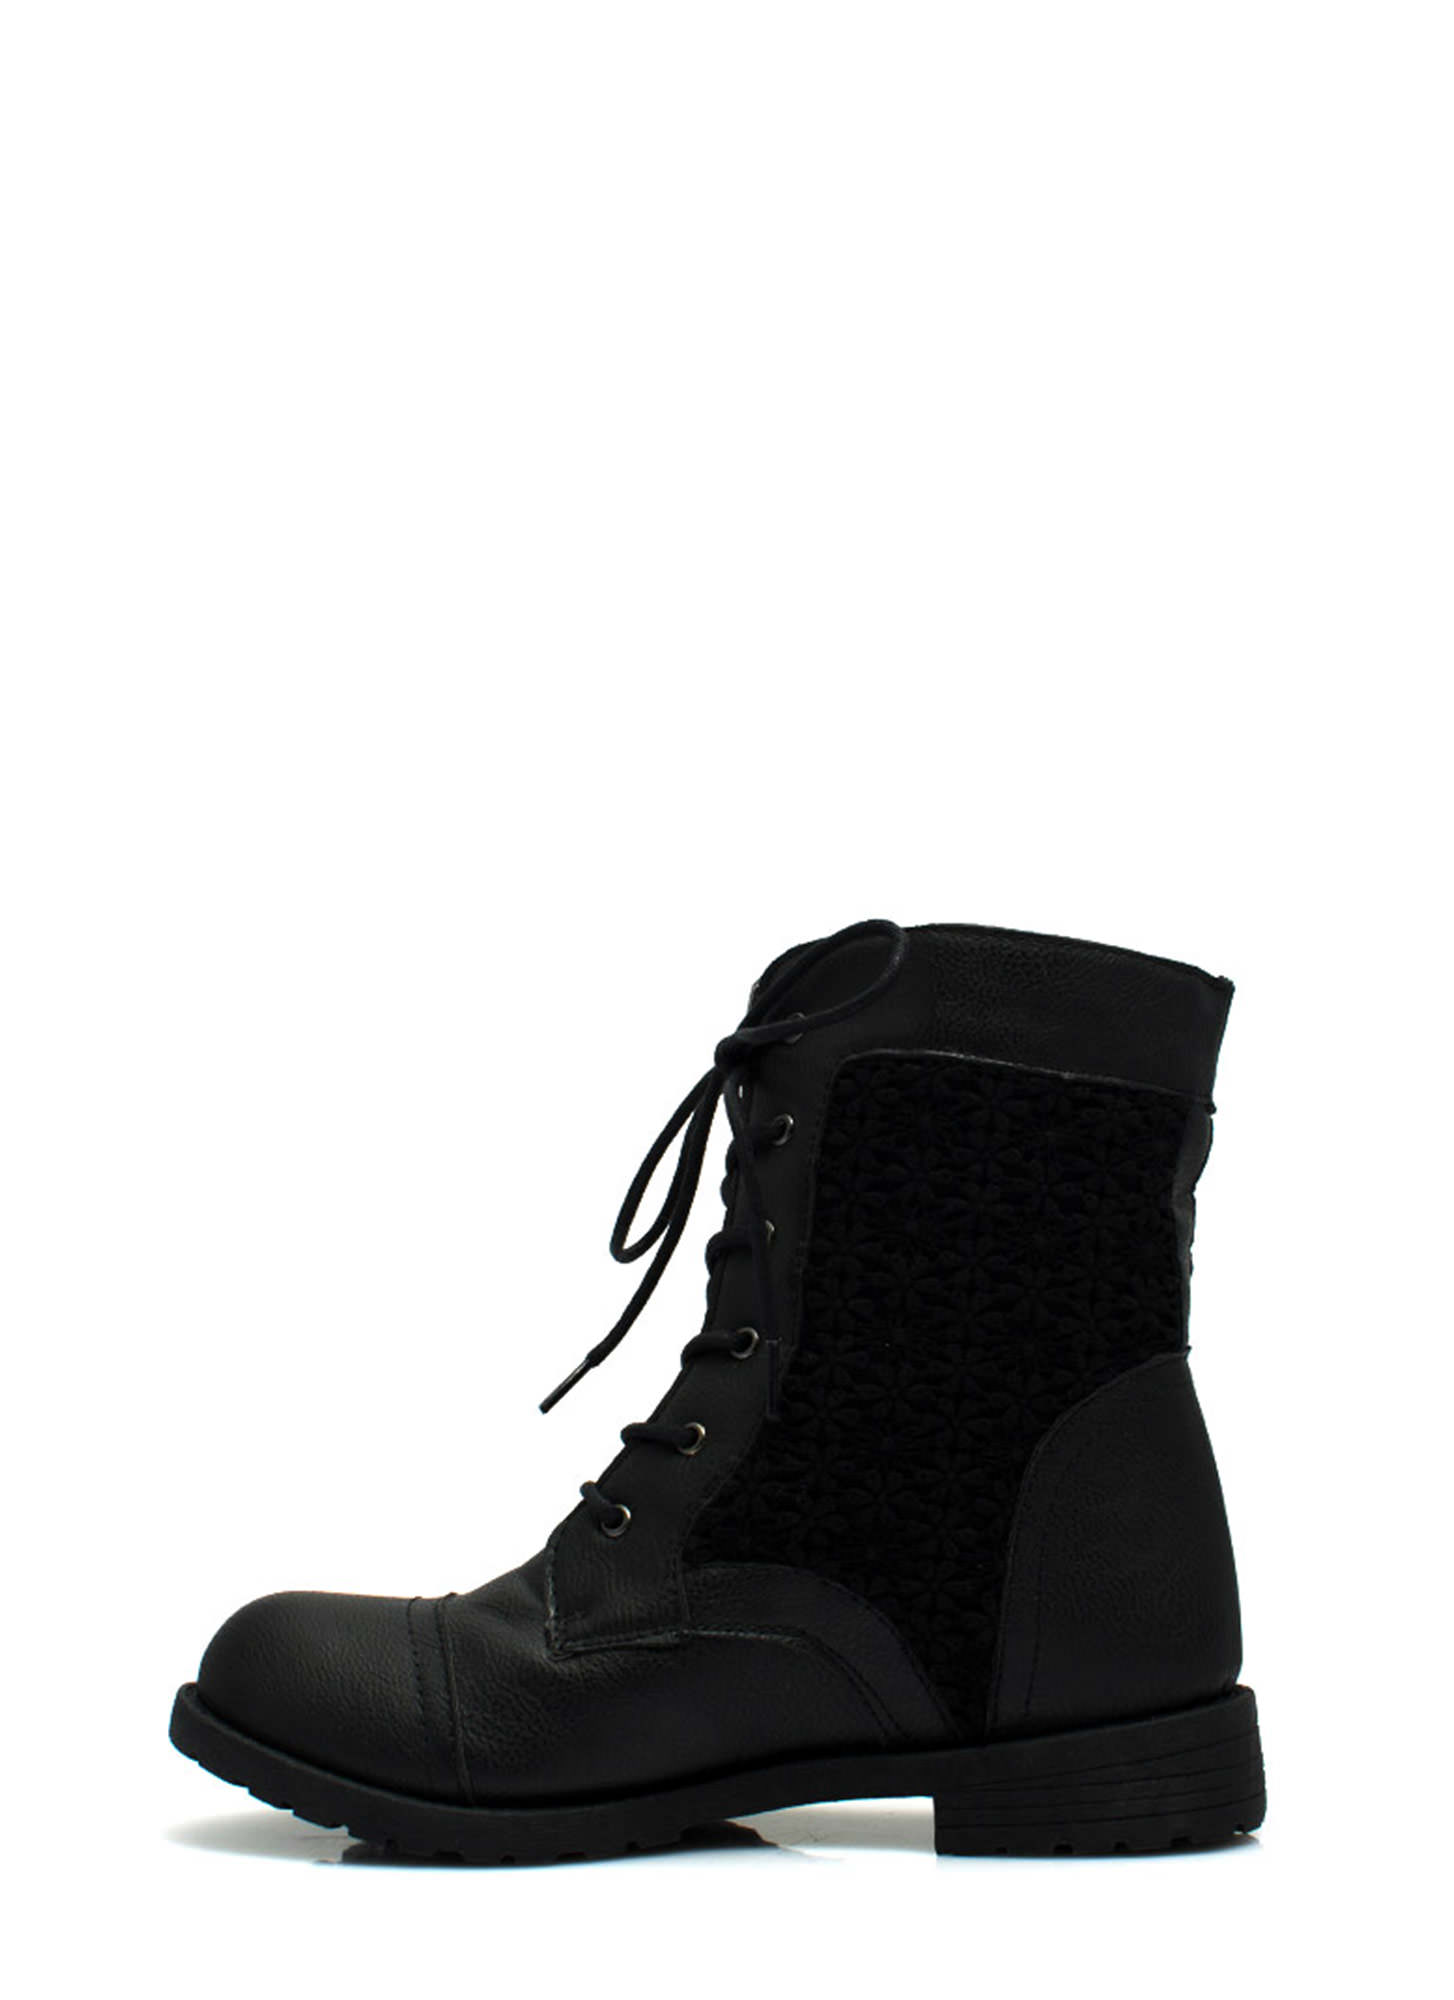 Daisy Daze Crochet Lace-Up Boots BLACK